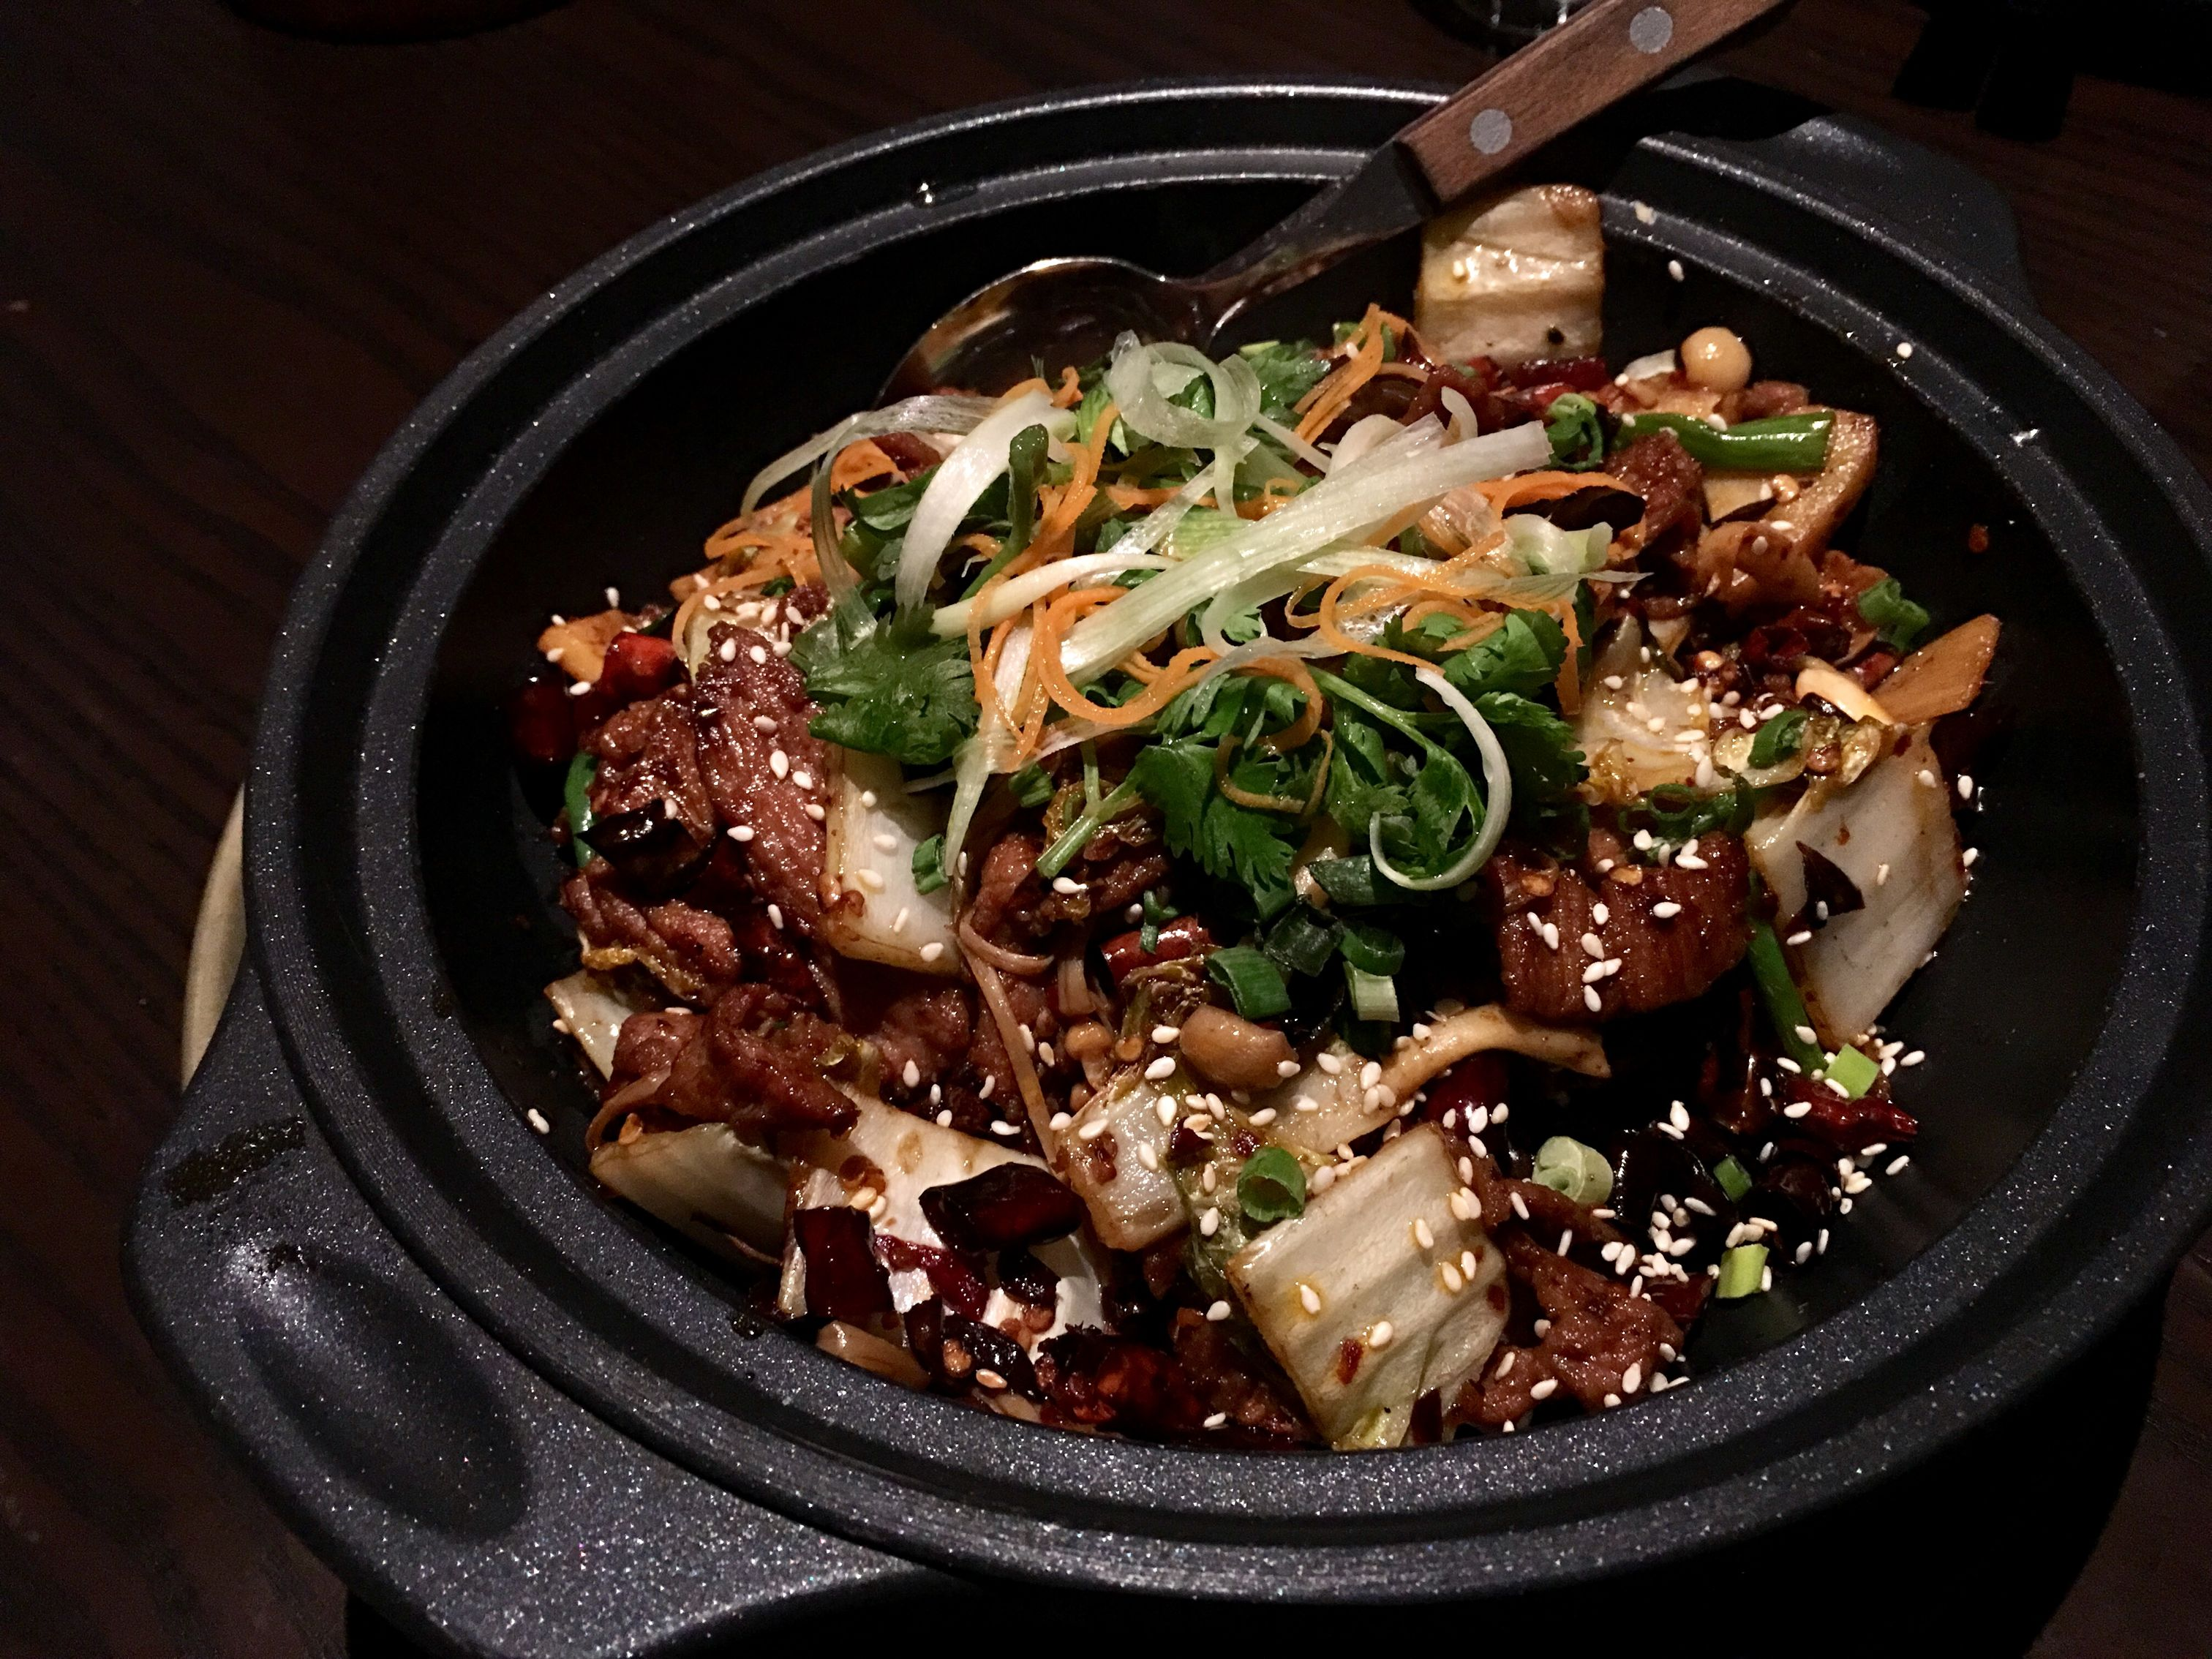 Auntie's Wok and Steam's mala: Kurobuta pork collar with lotus roots, woodear mushrooms, and scallion.